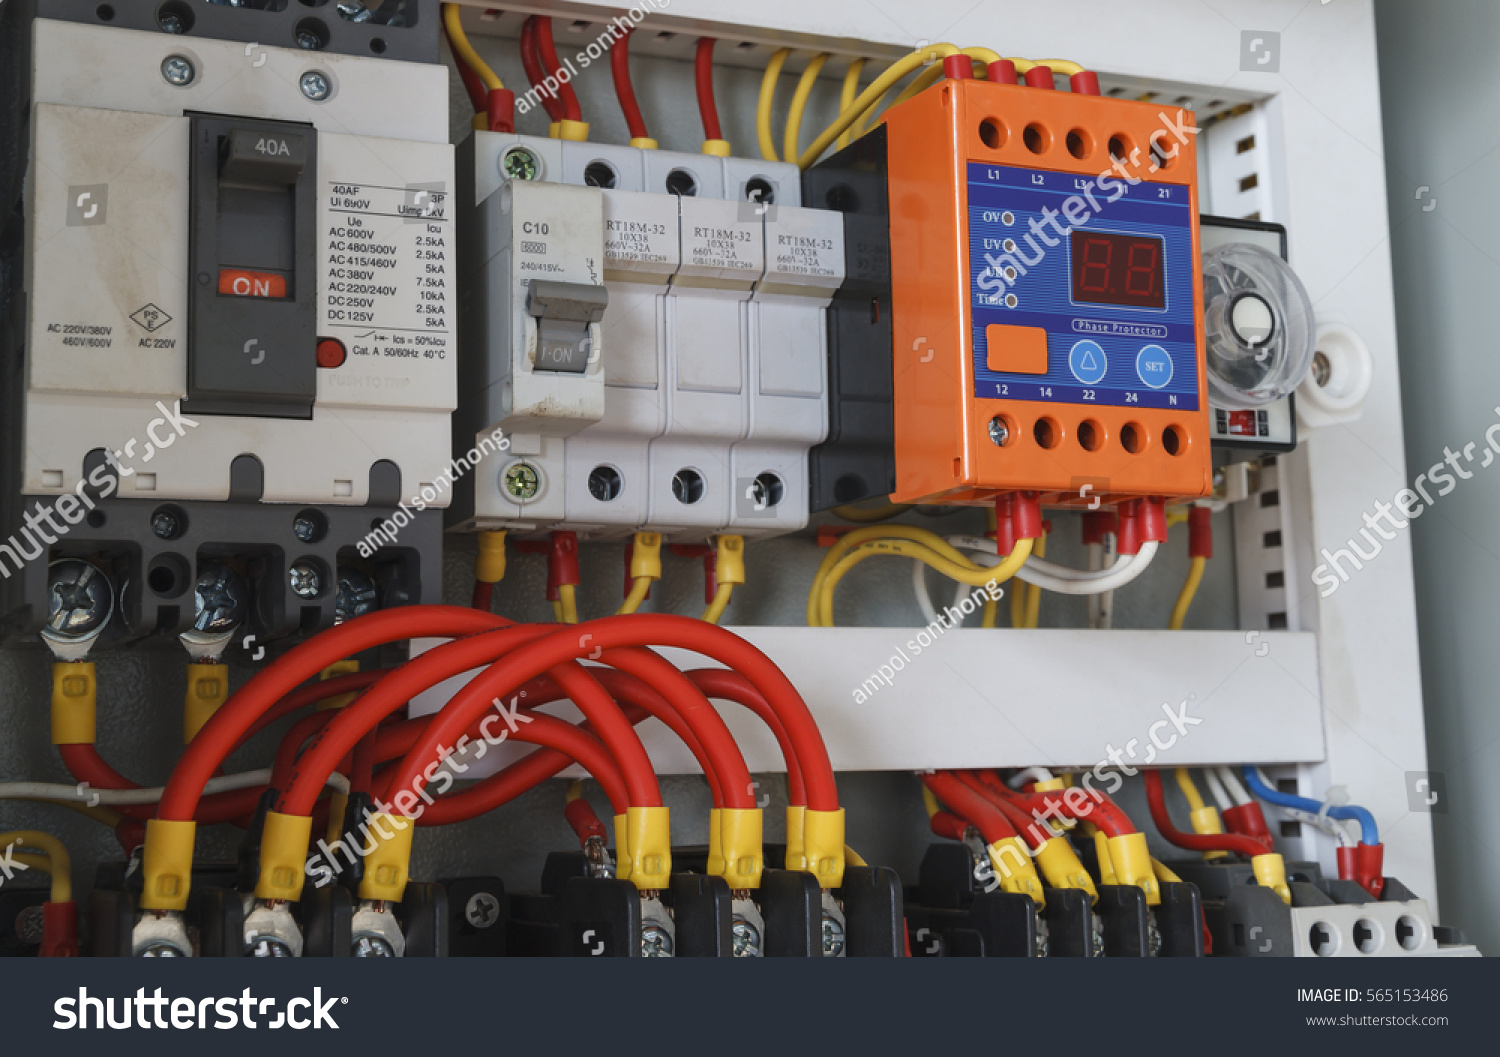 hight resolution of close up electrical wiring with timer and contactors